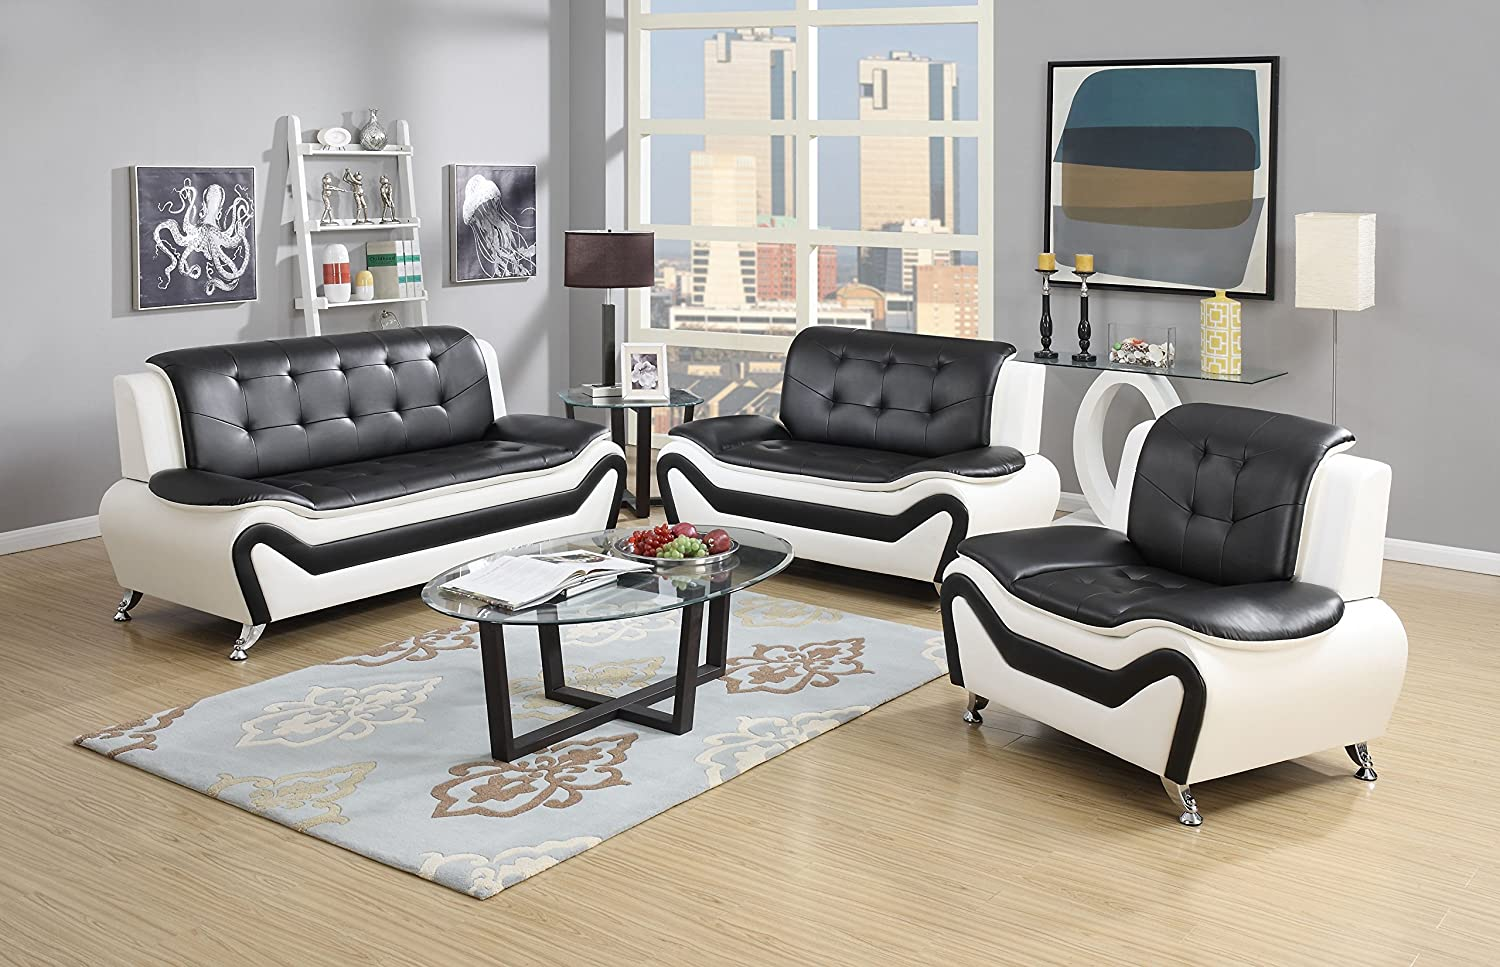 amazoncom us pride furniture 2 piece modern bonded leather sofa set with sofa and loveseat whiteblack kitchen u0026 dining